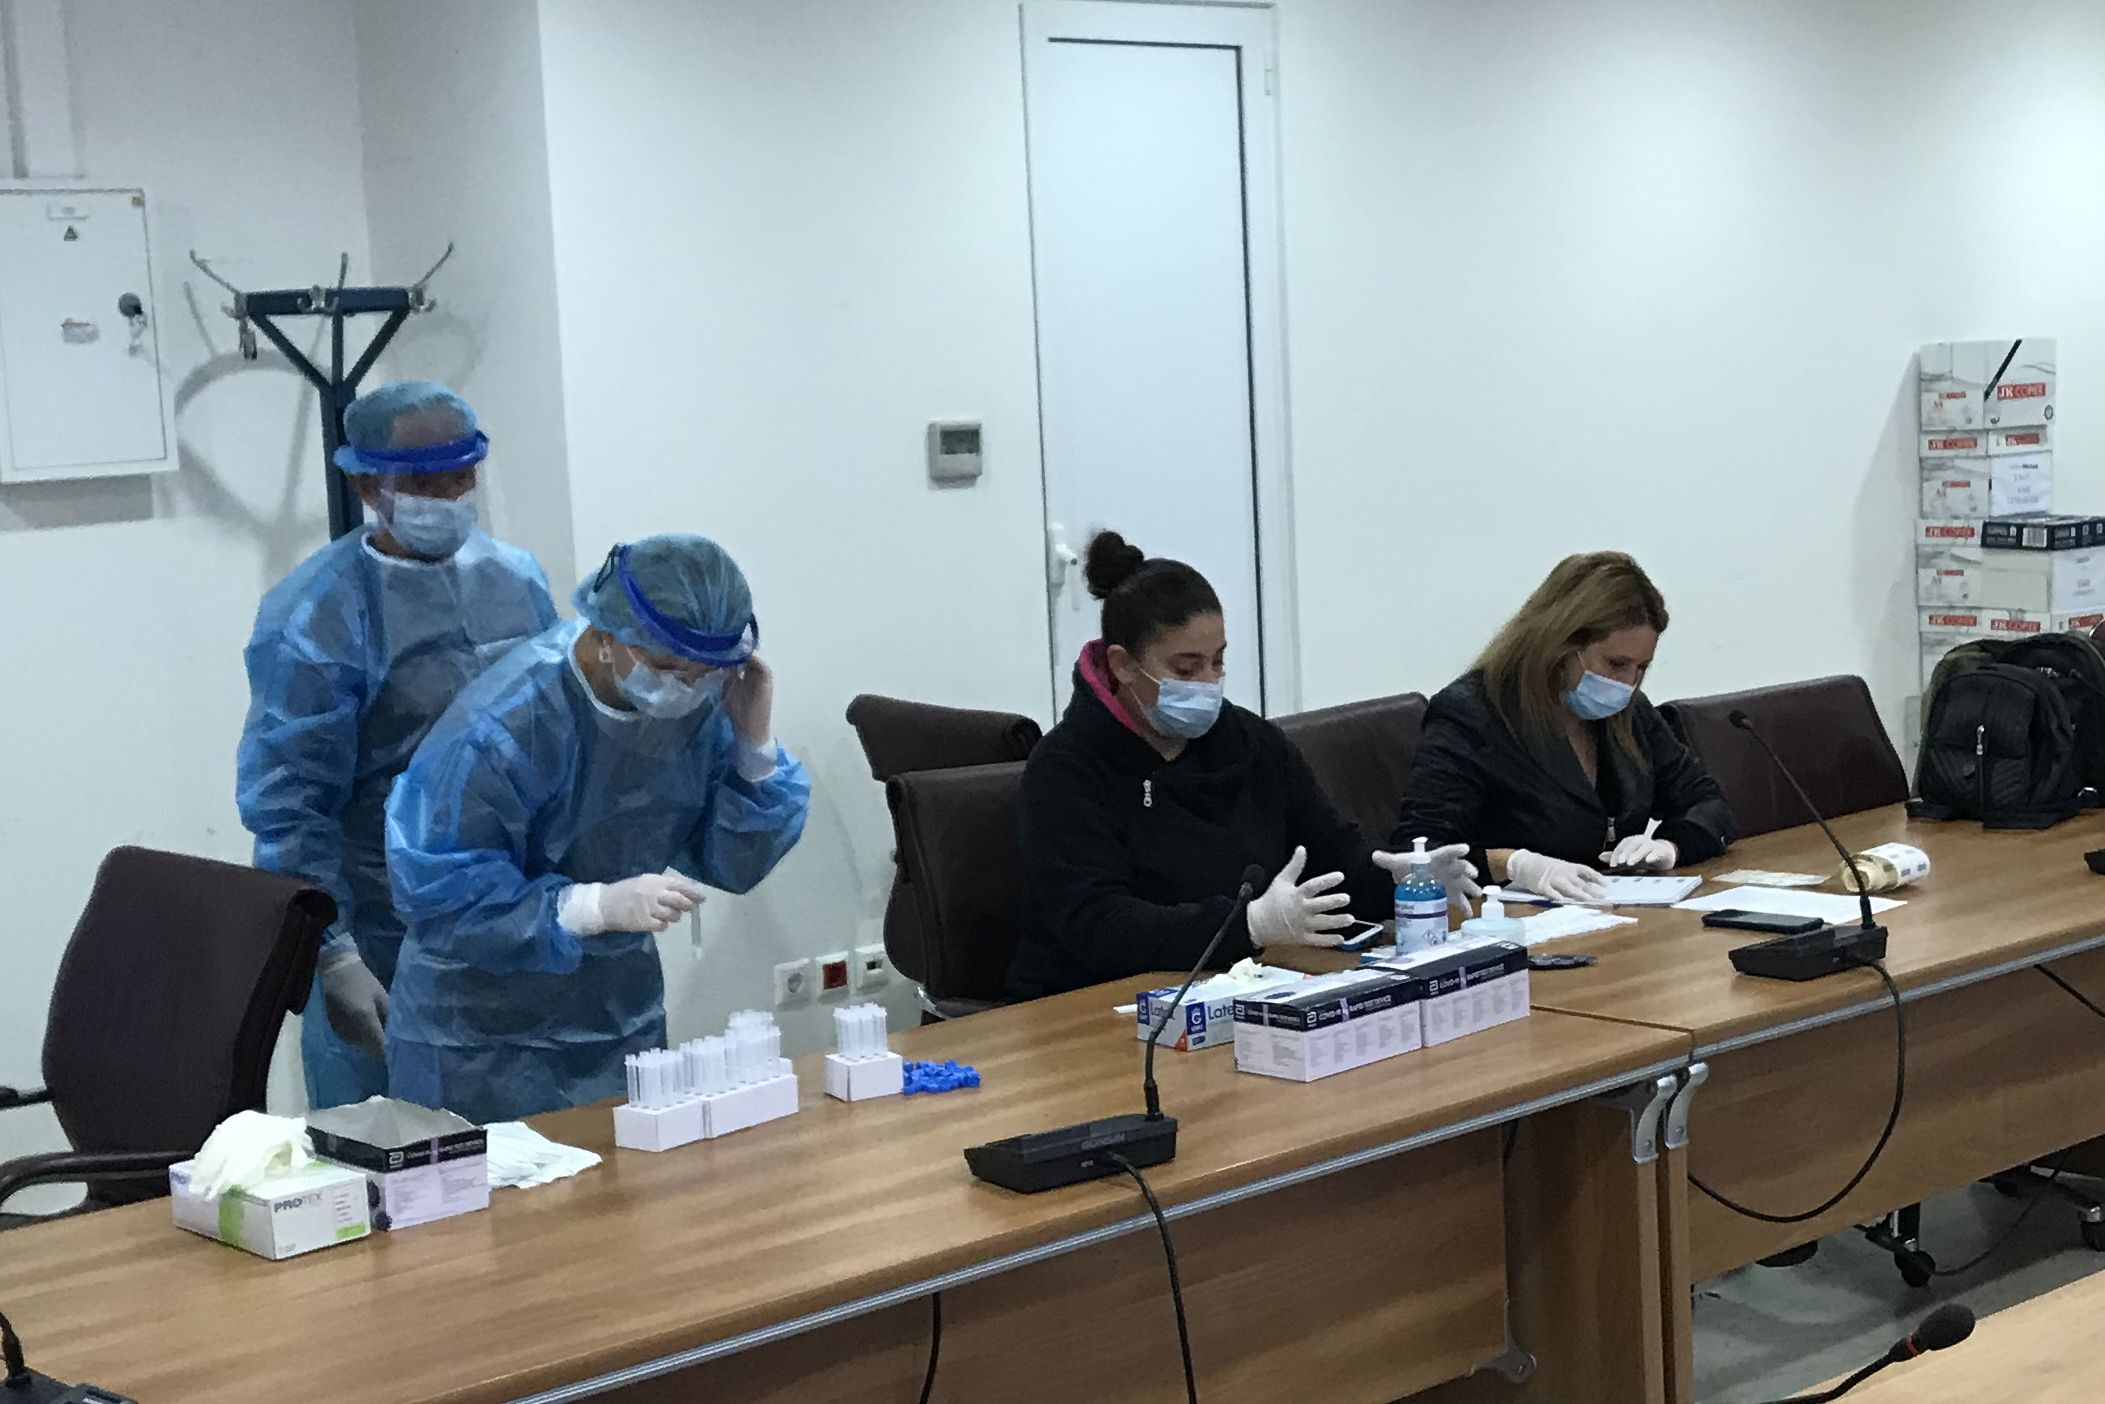 Ionian University personnel rapid tests all negative